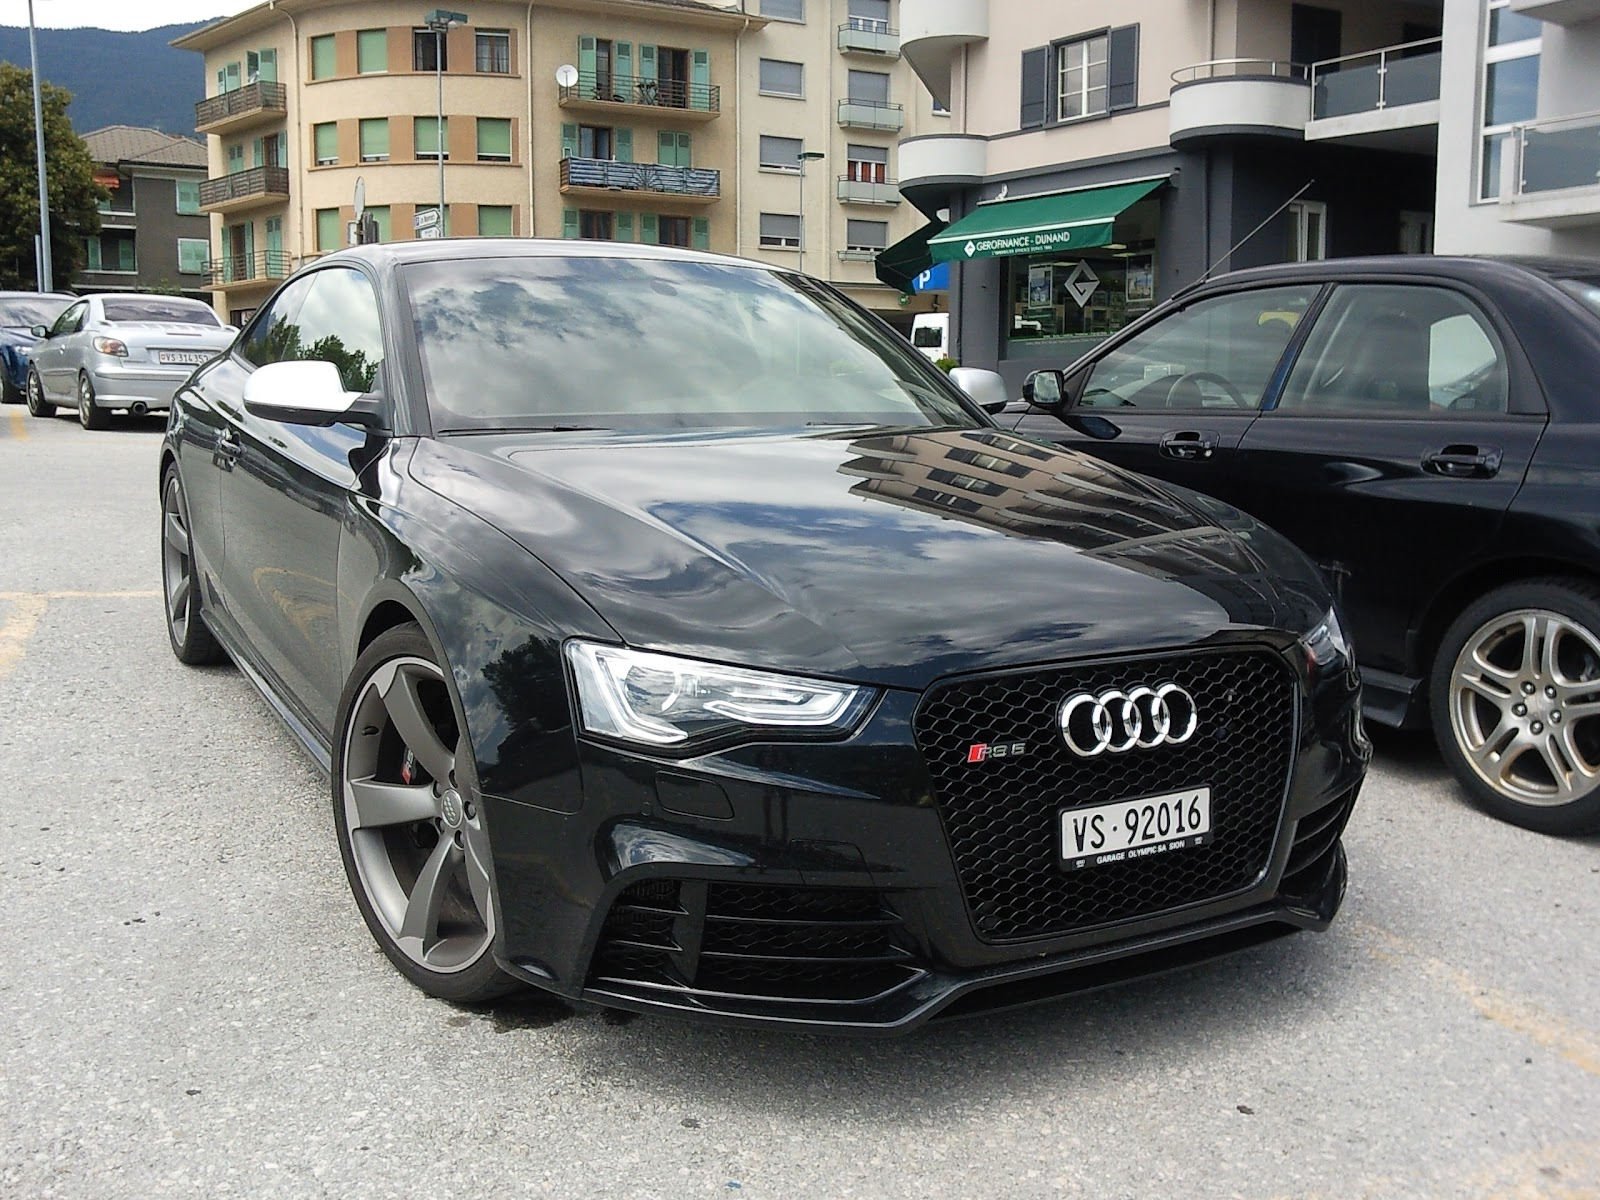 2012 Audi RS5 Widescreen